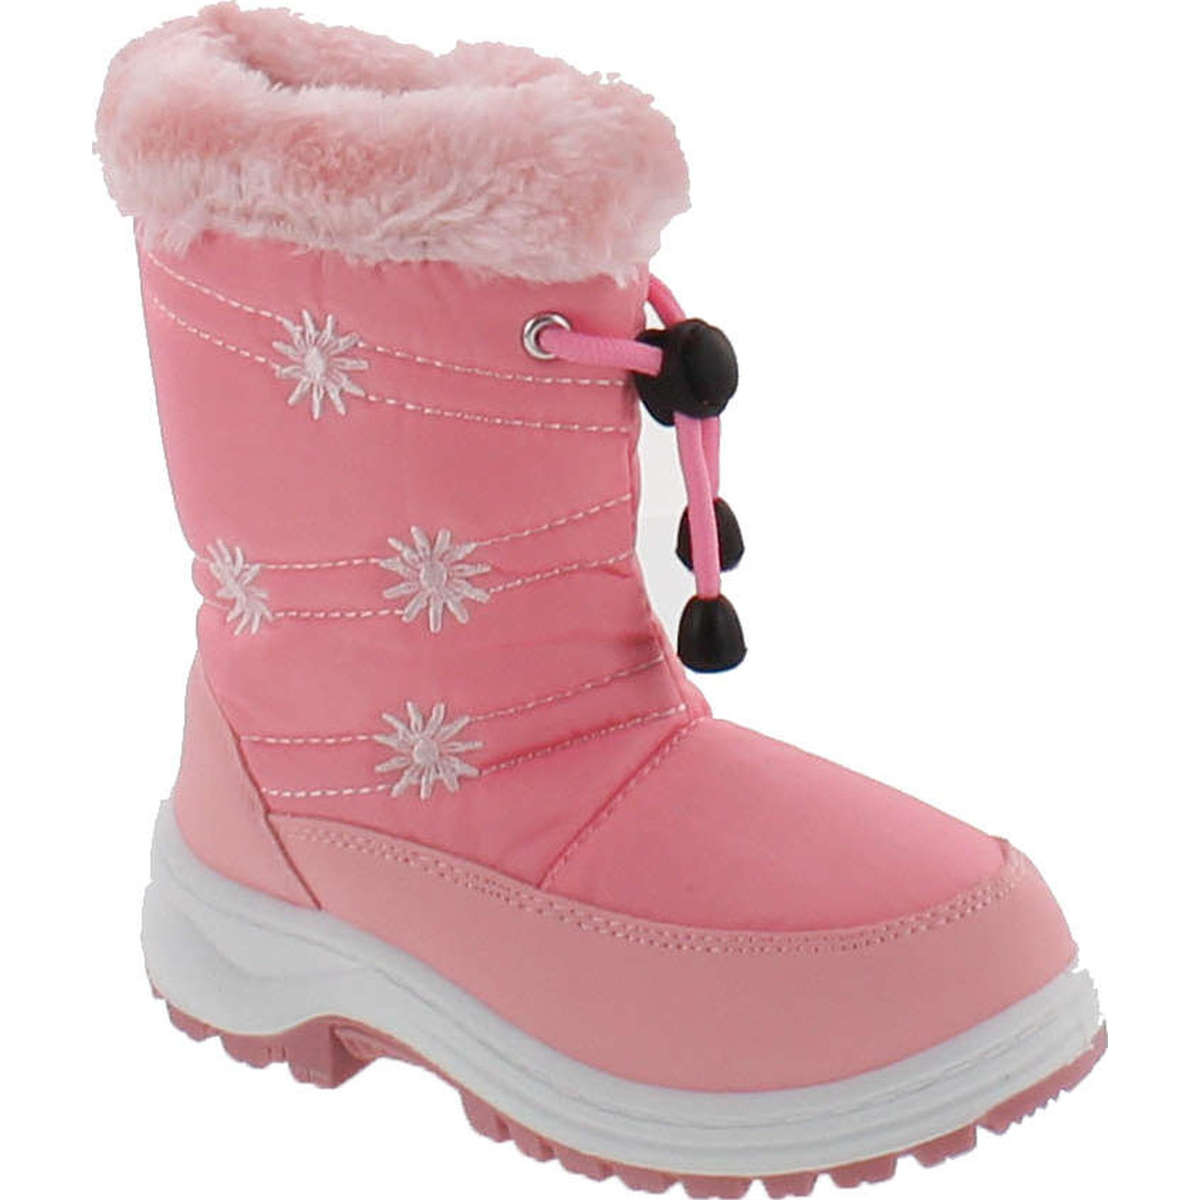 VIA PINKY SCARLETT-51F Children Girl Comfort Flower Warm Mid Calf Snow Boots by Via Pinky